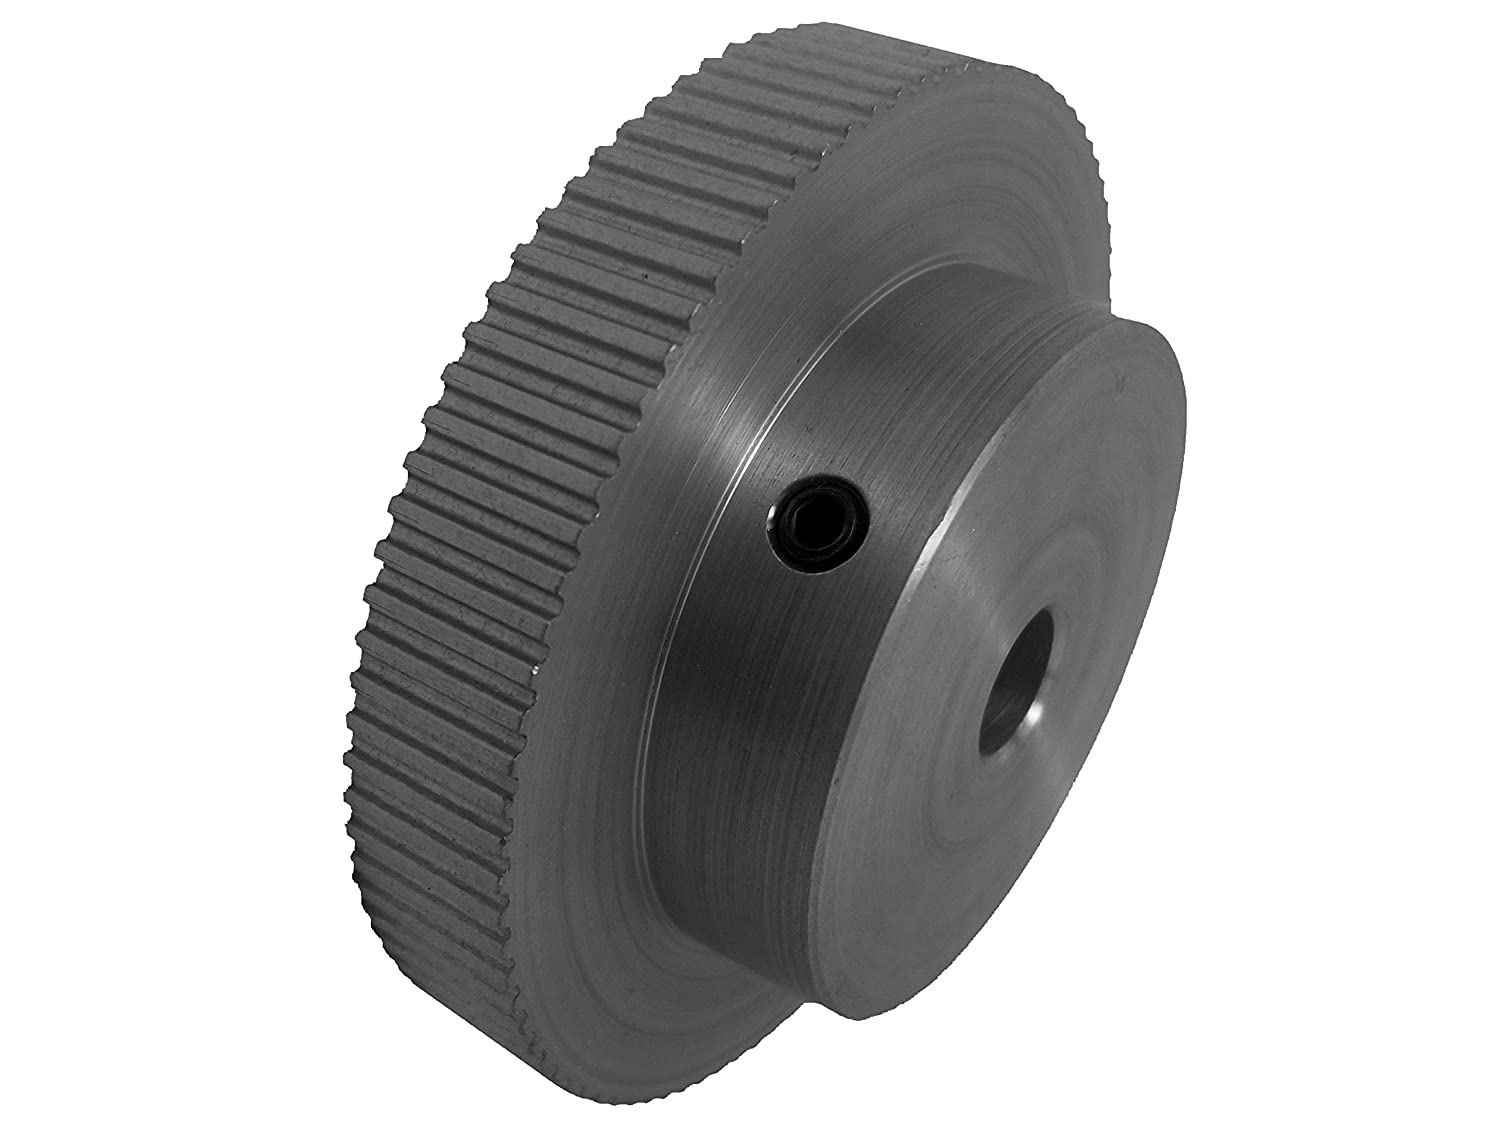 MXL Pitch for 0.25 Wide Belts 90 Teeth 1 Flange and Hub Serves as Second Flange BandB Manufacturing 90MP025M6A8 Timing Pulley